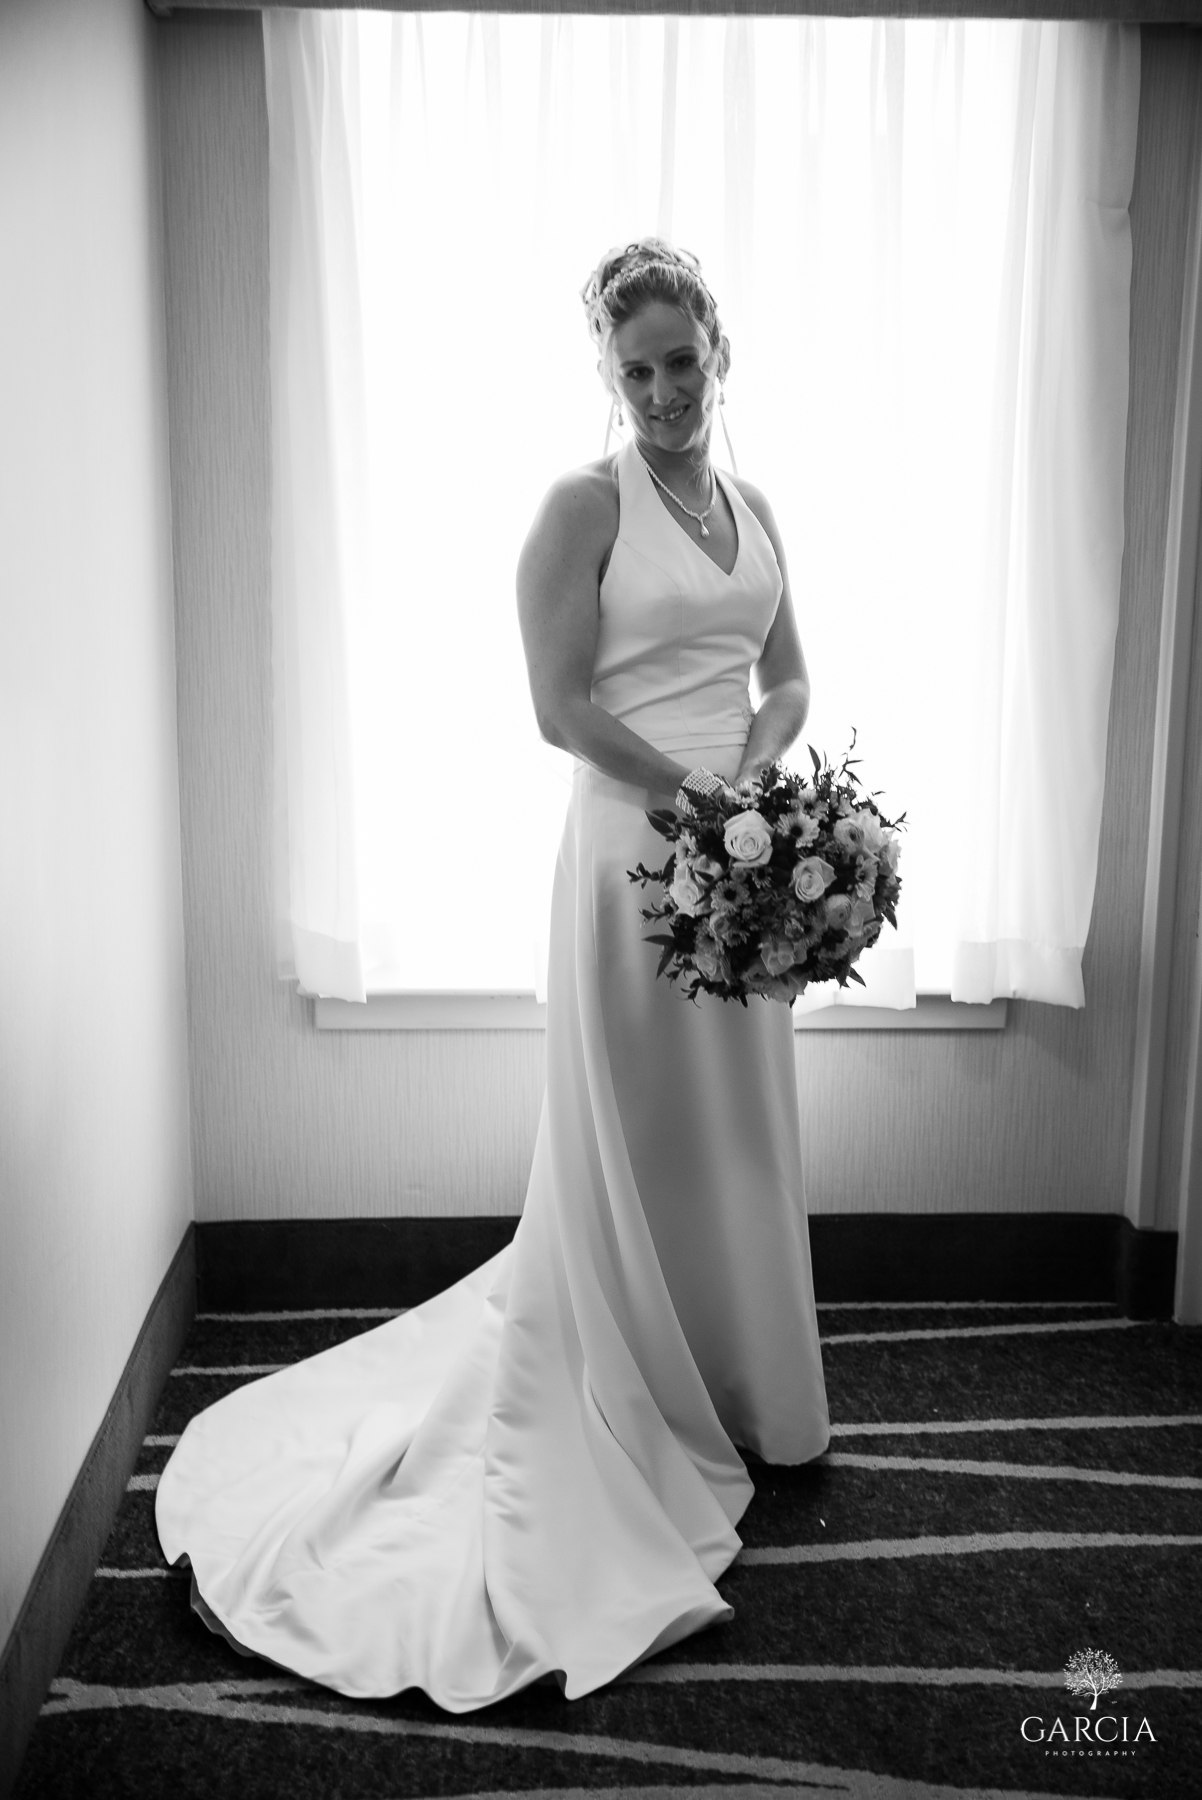 Johanna-Jeff-Wedding-Garcia-Photography-7620.jpg